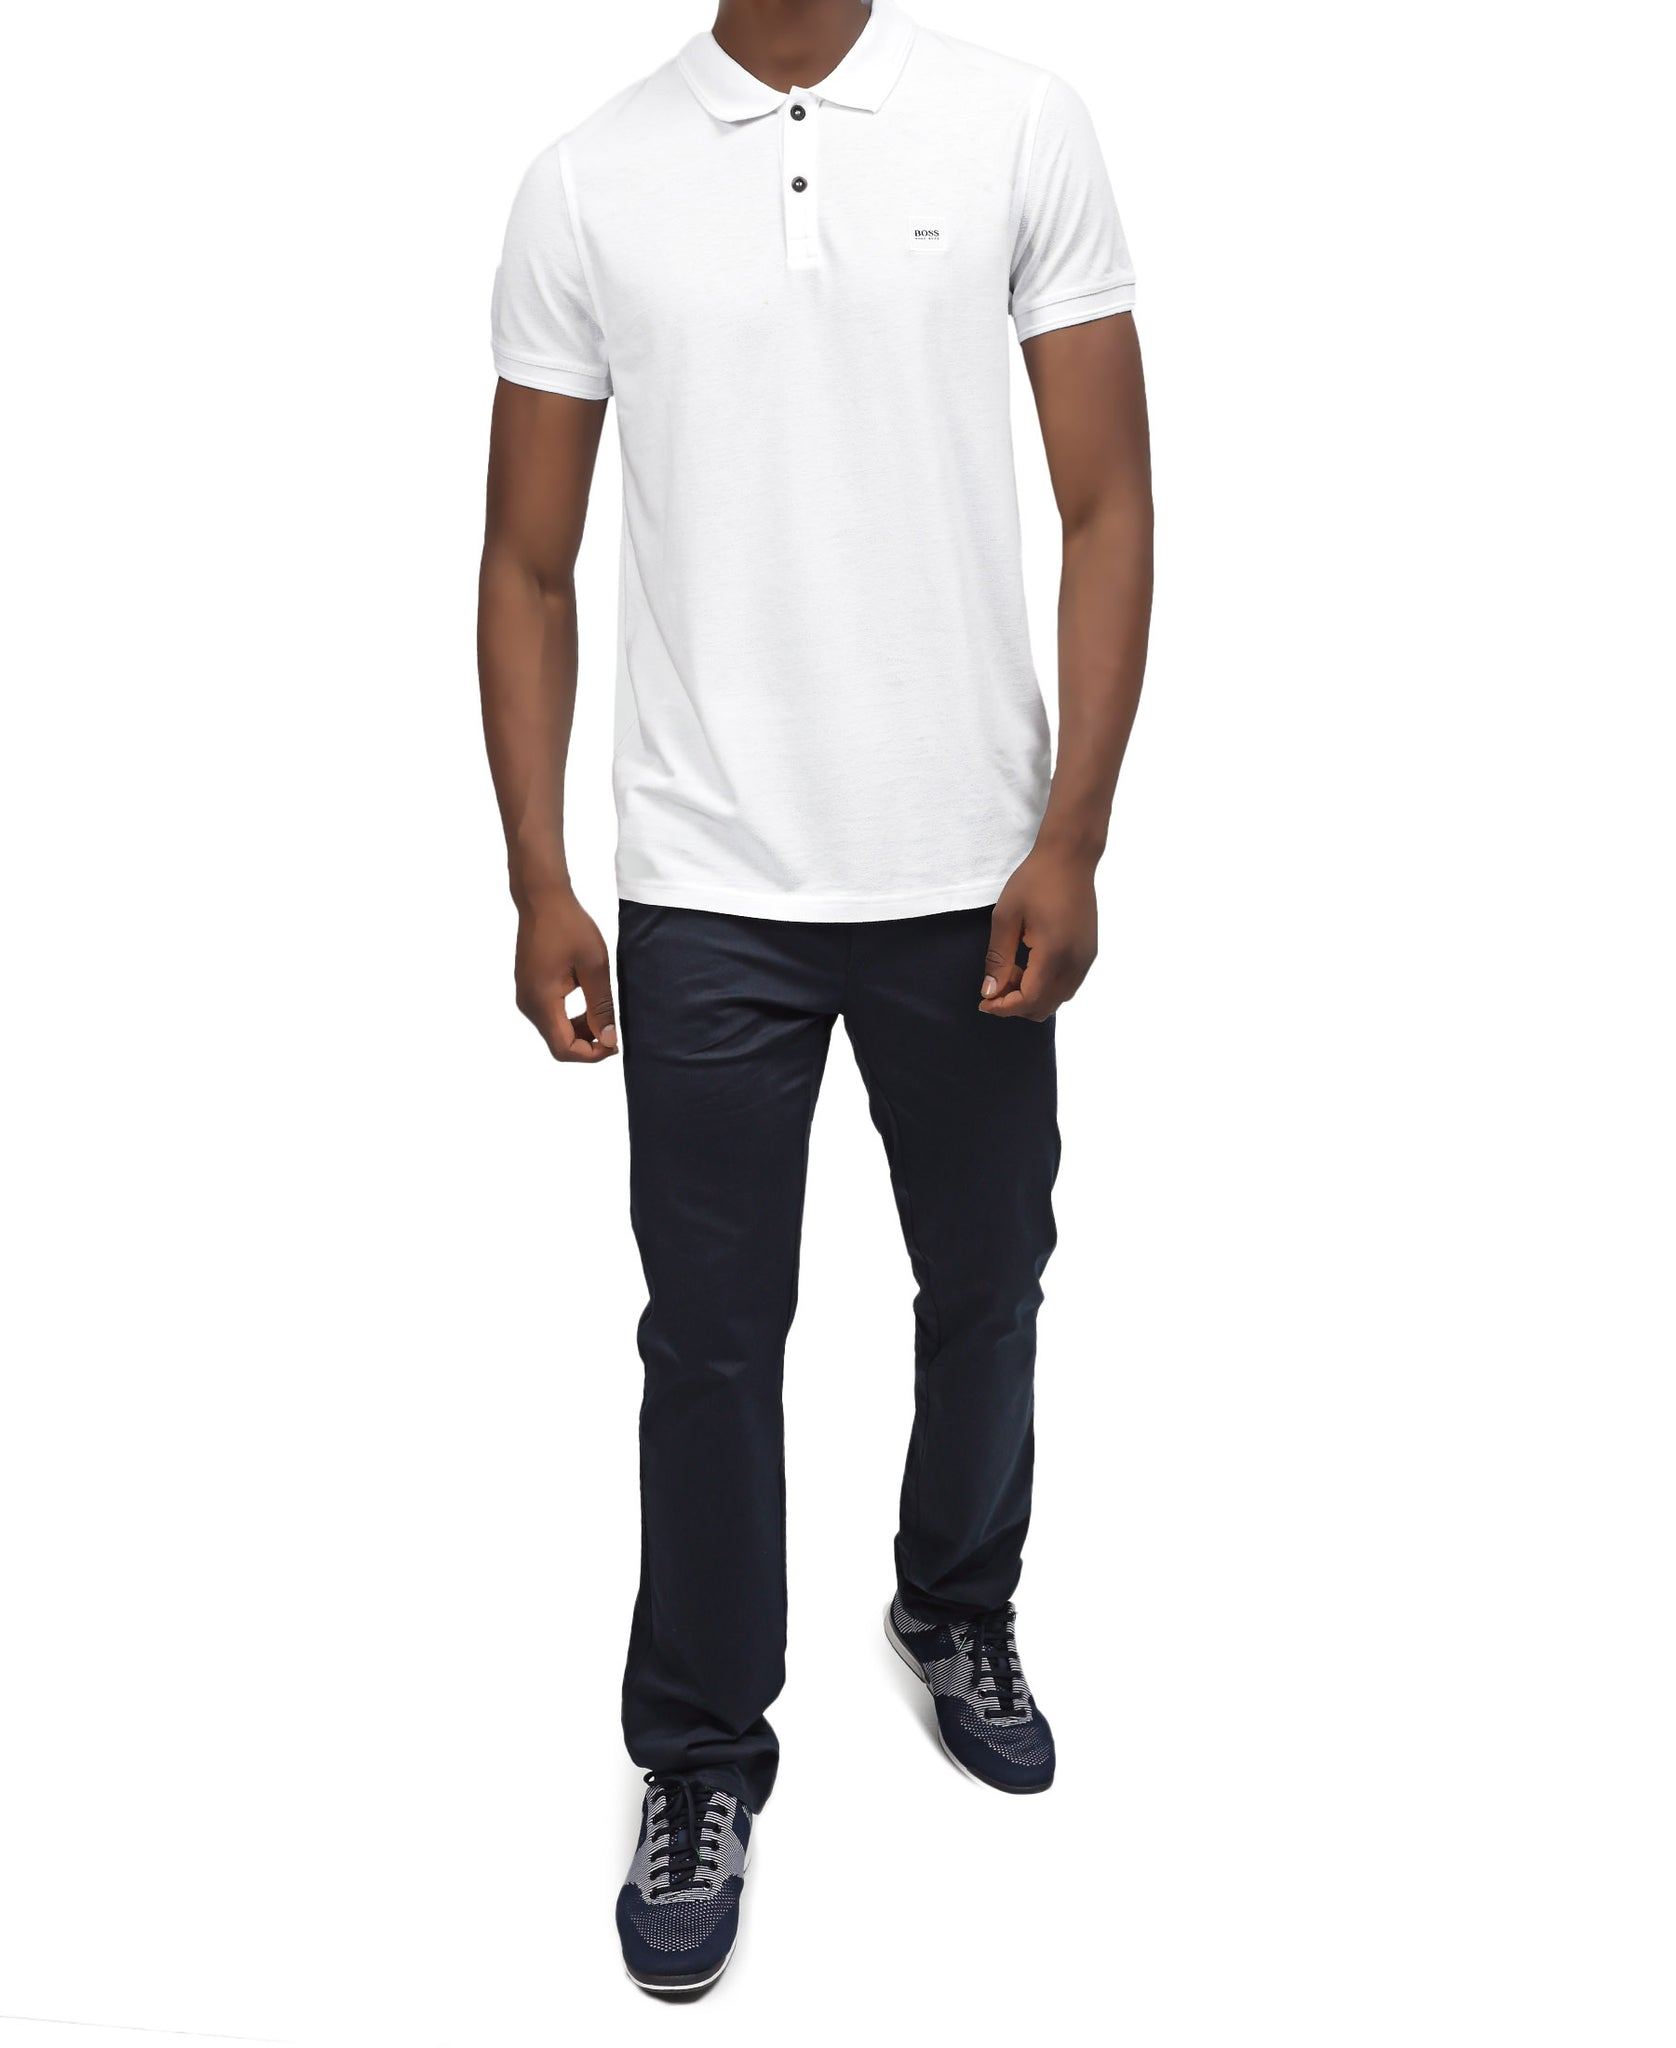 Hugo Boss Golfer - White